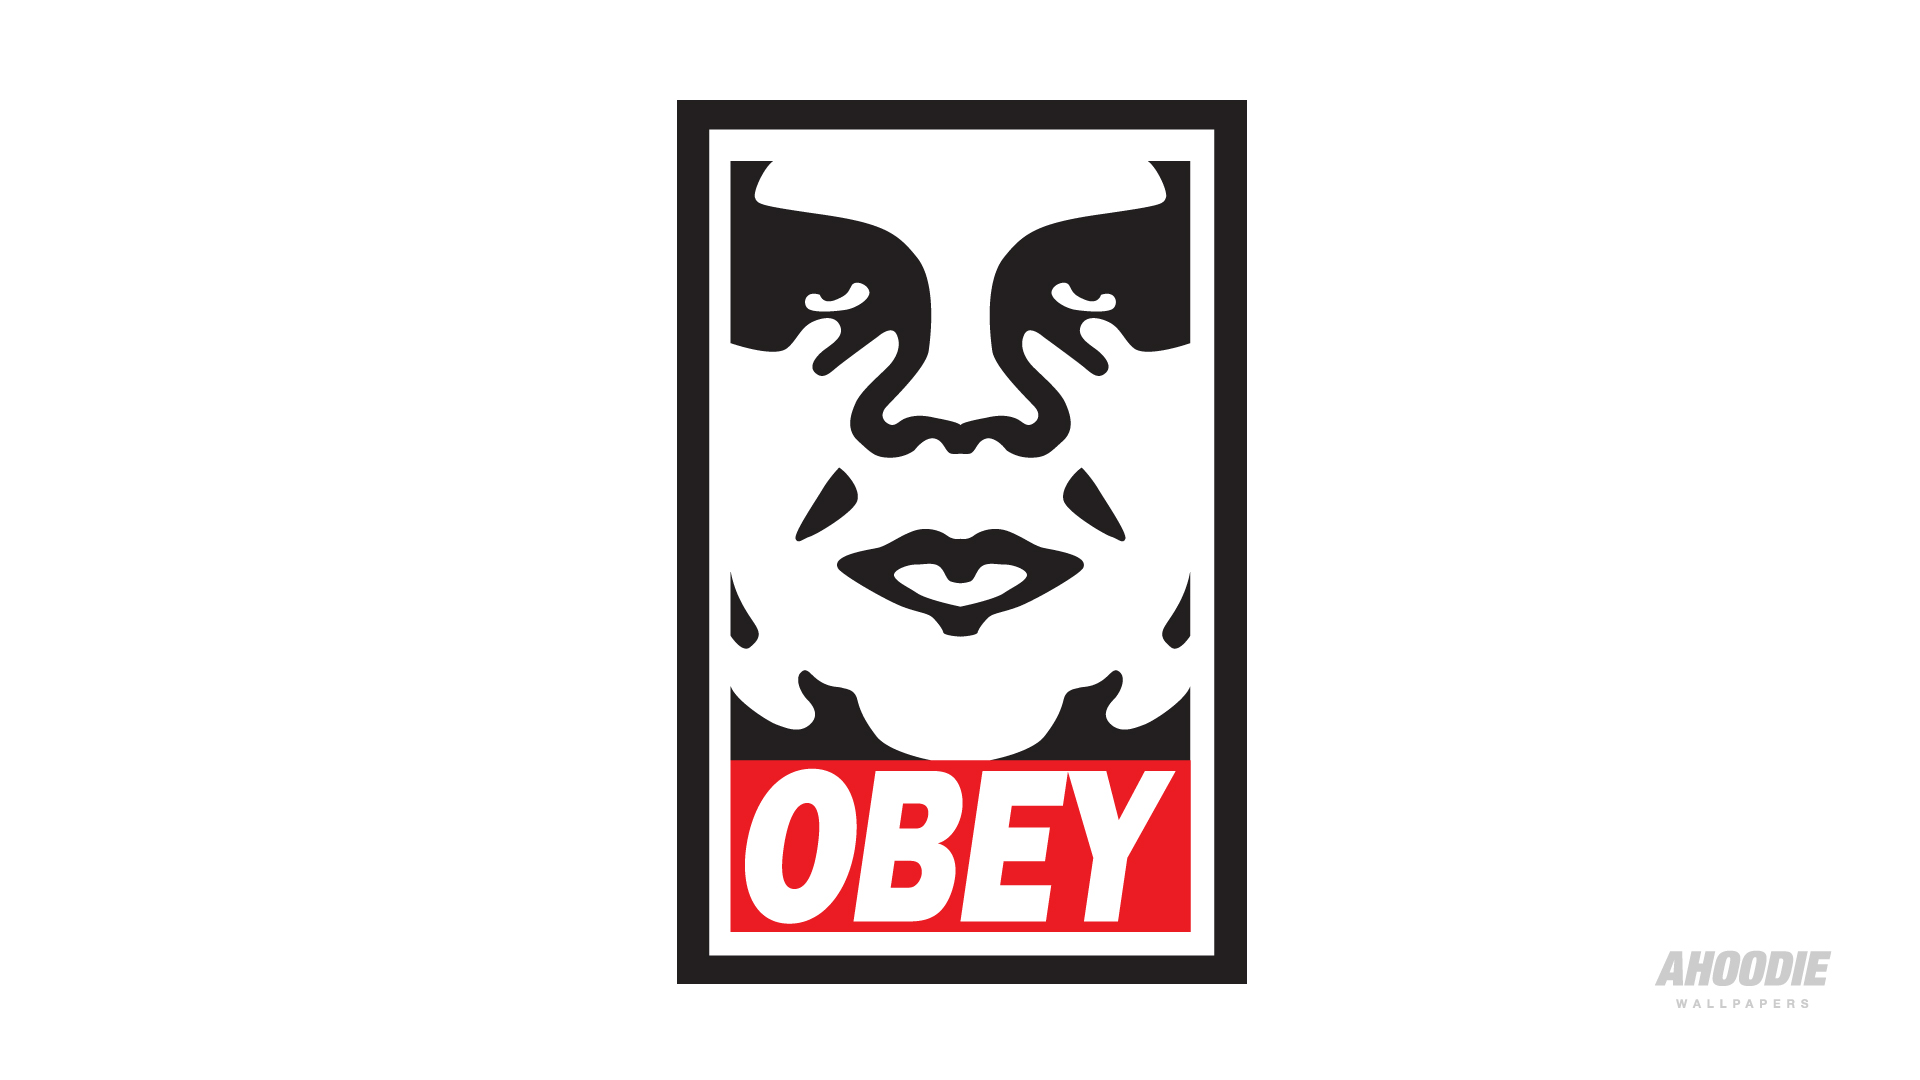 16737 Obey Cool Backgrounds Wallpaper   WalOpscom 1920x1080